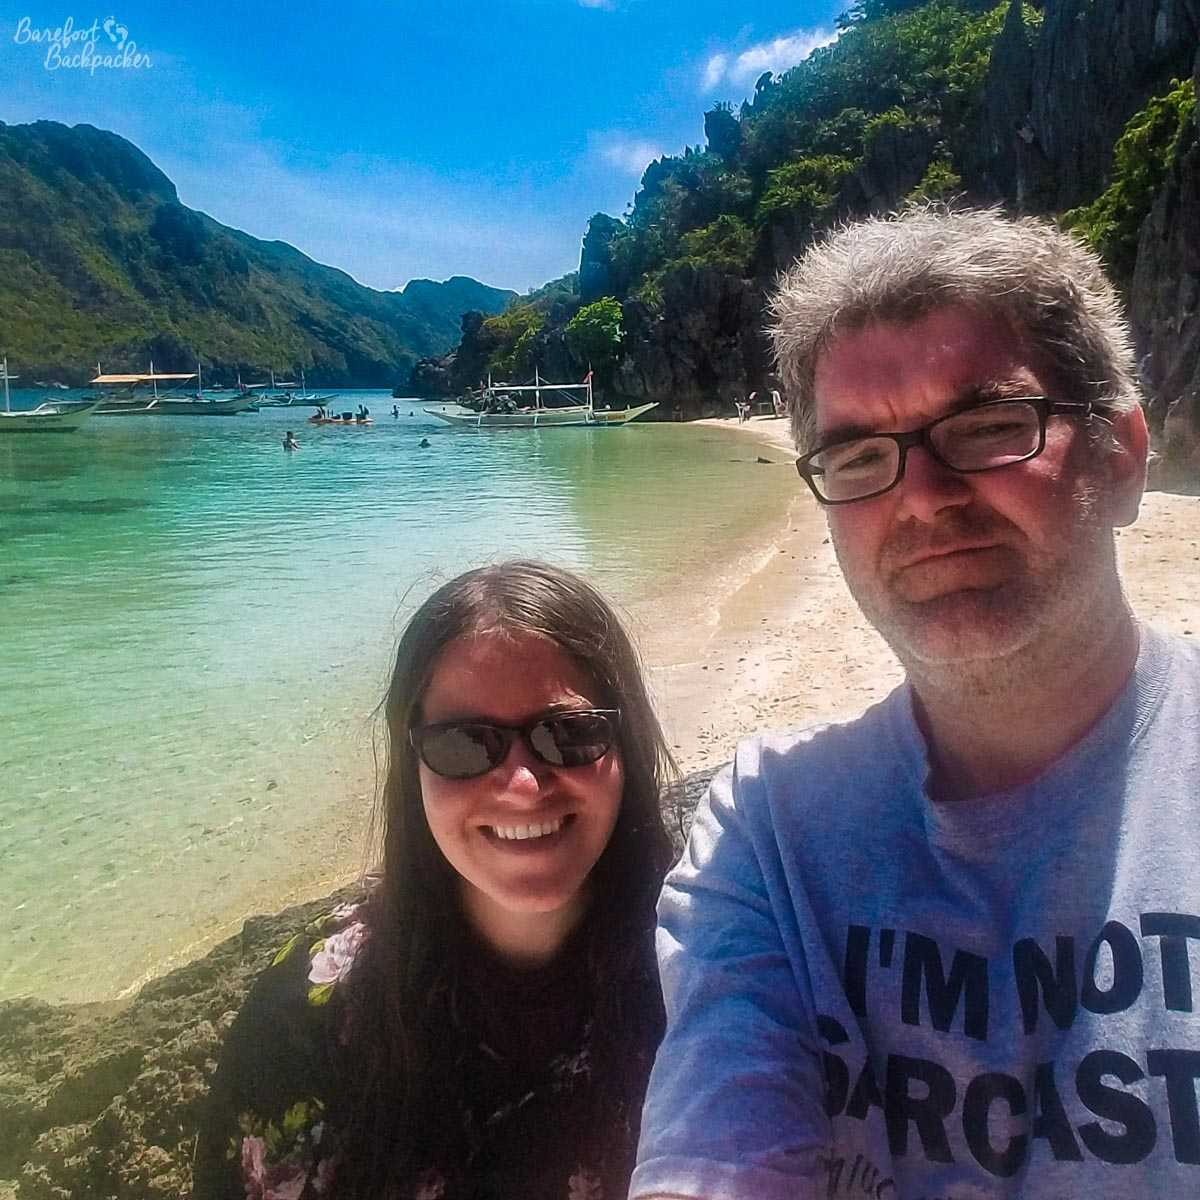 The Barefoot Backpacker not travelling solo for once. Rather he is with Laura (from Tumbleweed Chronicles), standing on the beach at Helicopter Island, in Philippines